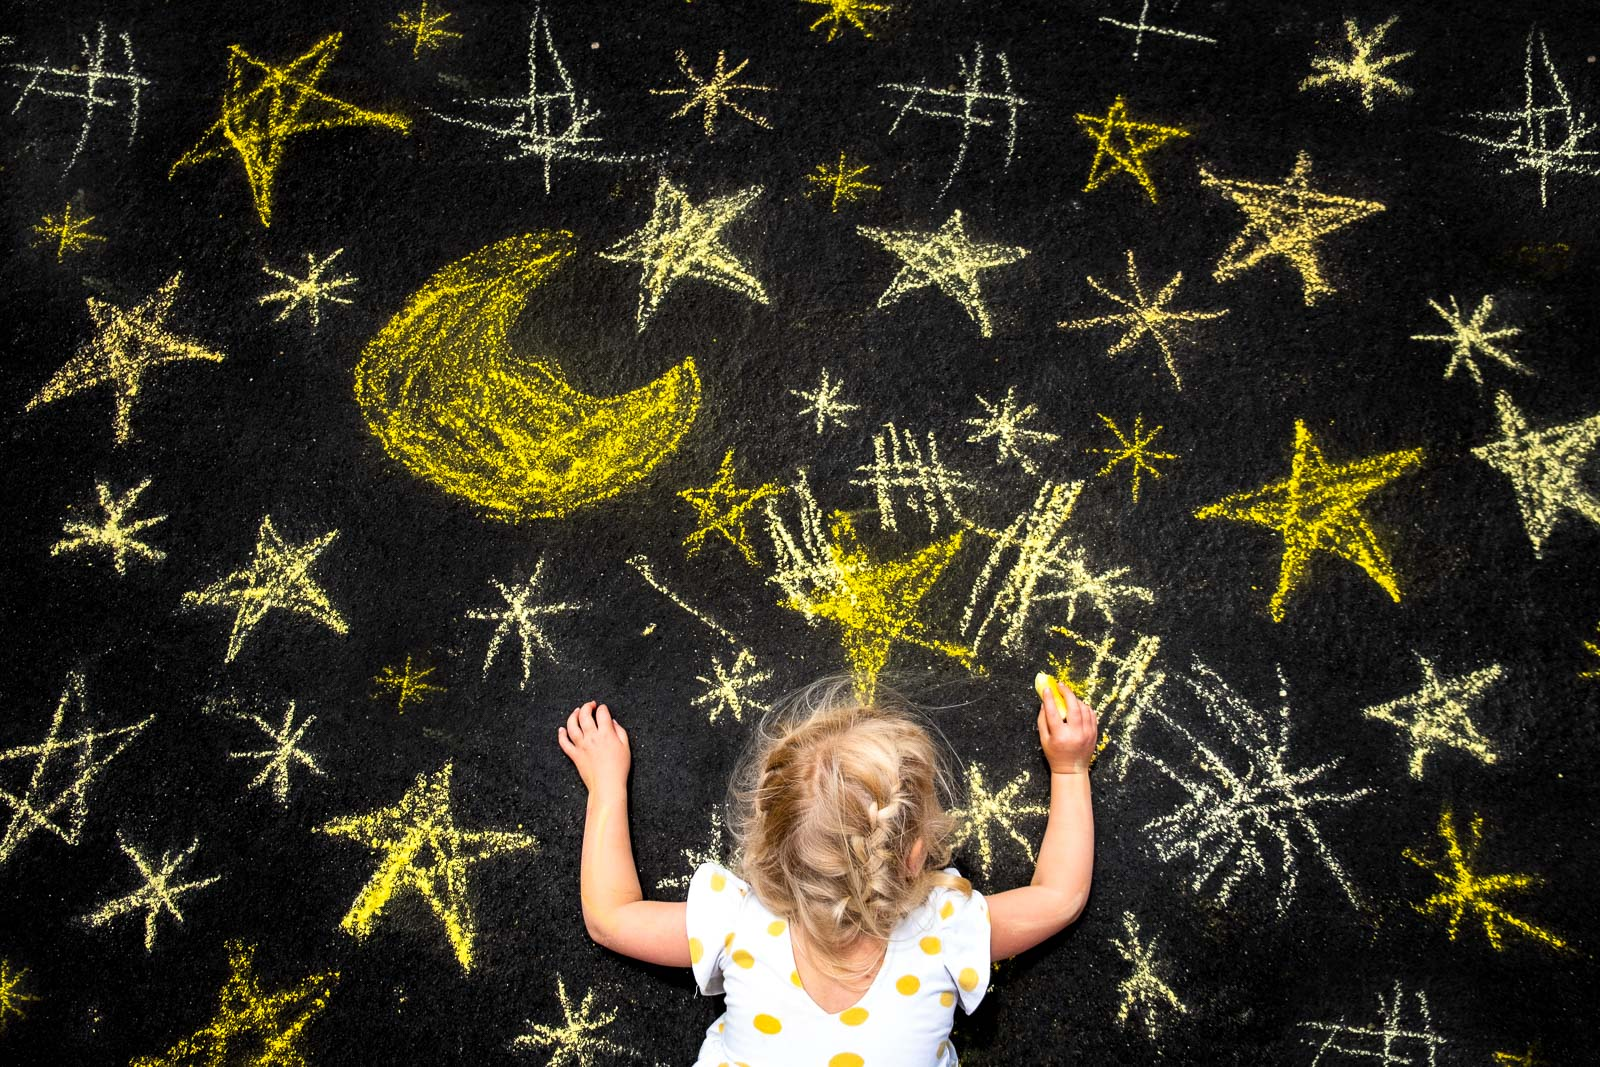 Unexpected Backdrop girl drawing yellow stars on black asphalt by karlee hooper